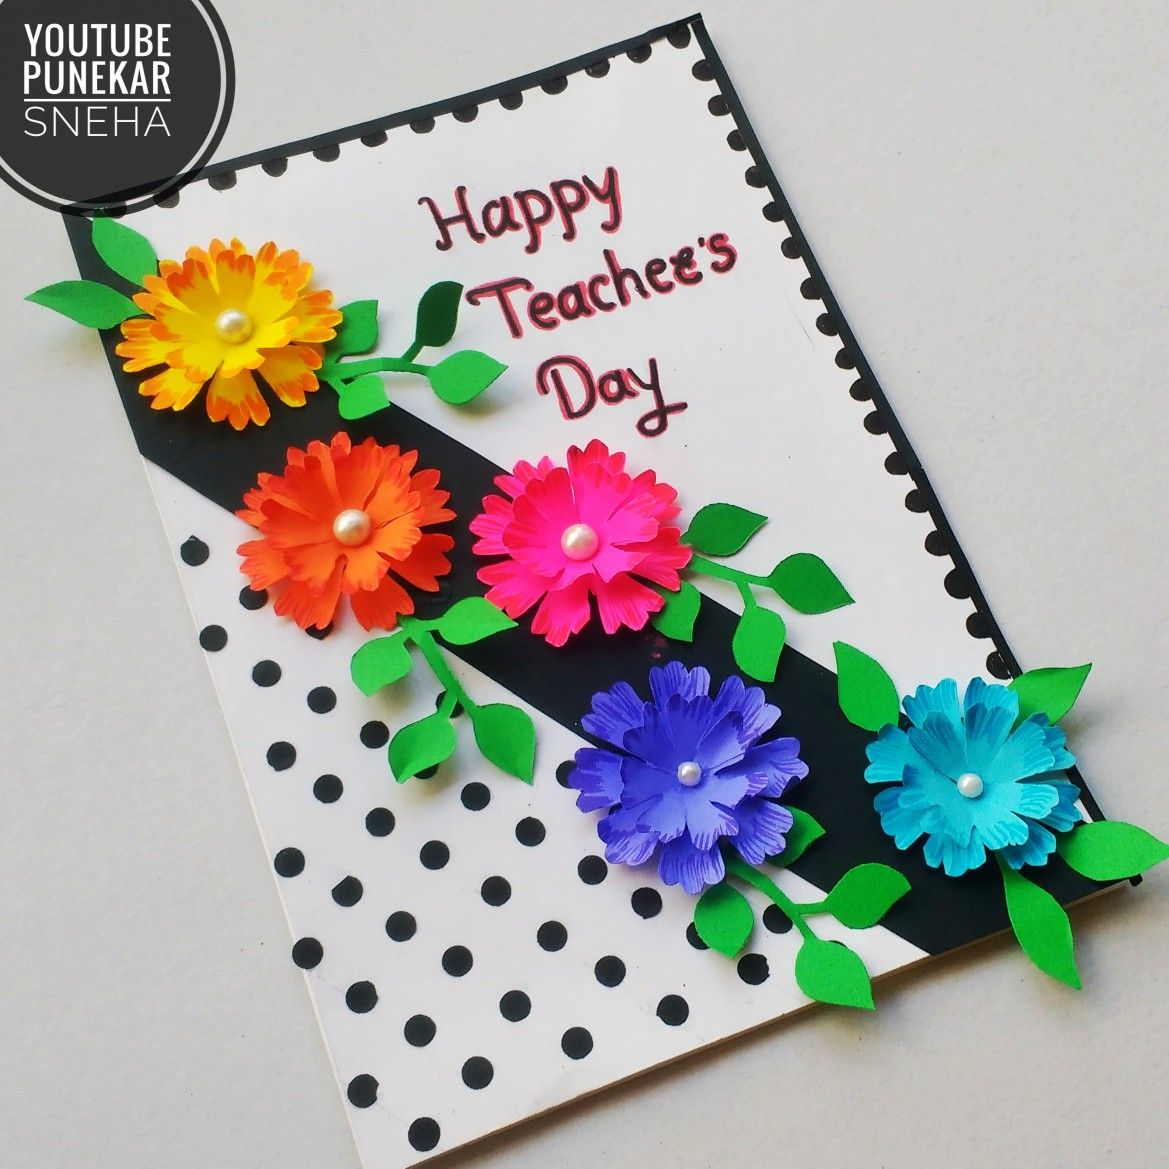 Teacher S Day Card Making How To Make Easy Teachers Day Card Making By Punekar Sneha In 2020 Teacher Birthday Card Teacher Cards Card Making Birthday